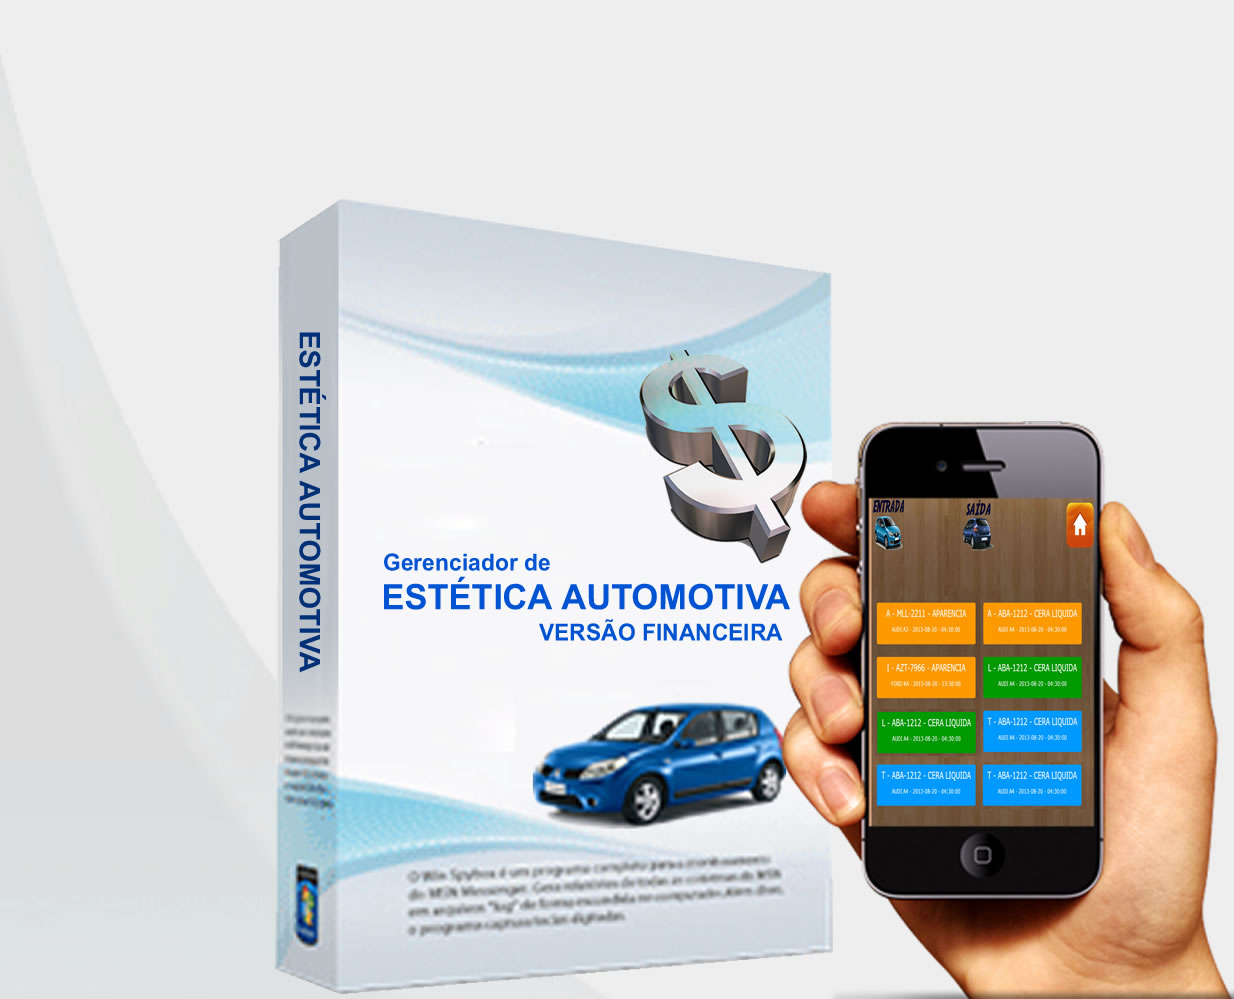 Estética Automotiva + TouchScreen -  SISTEMA DESCOMPLICADO